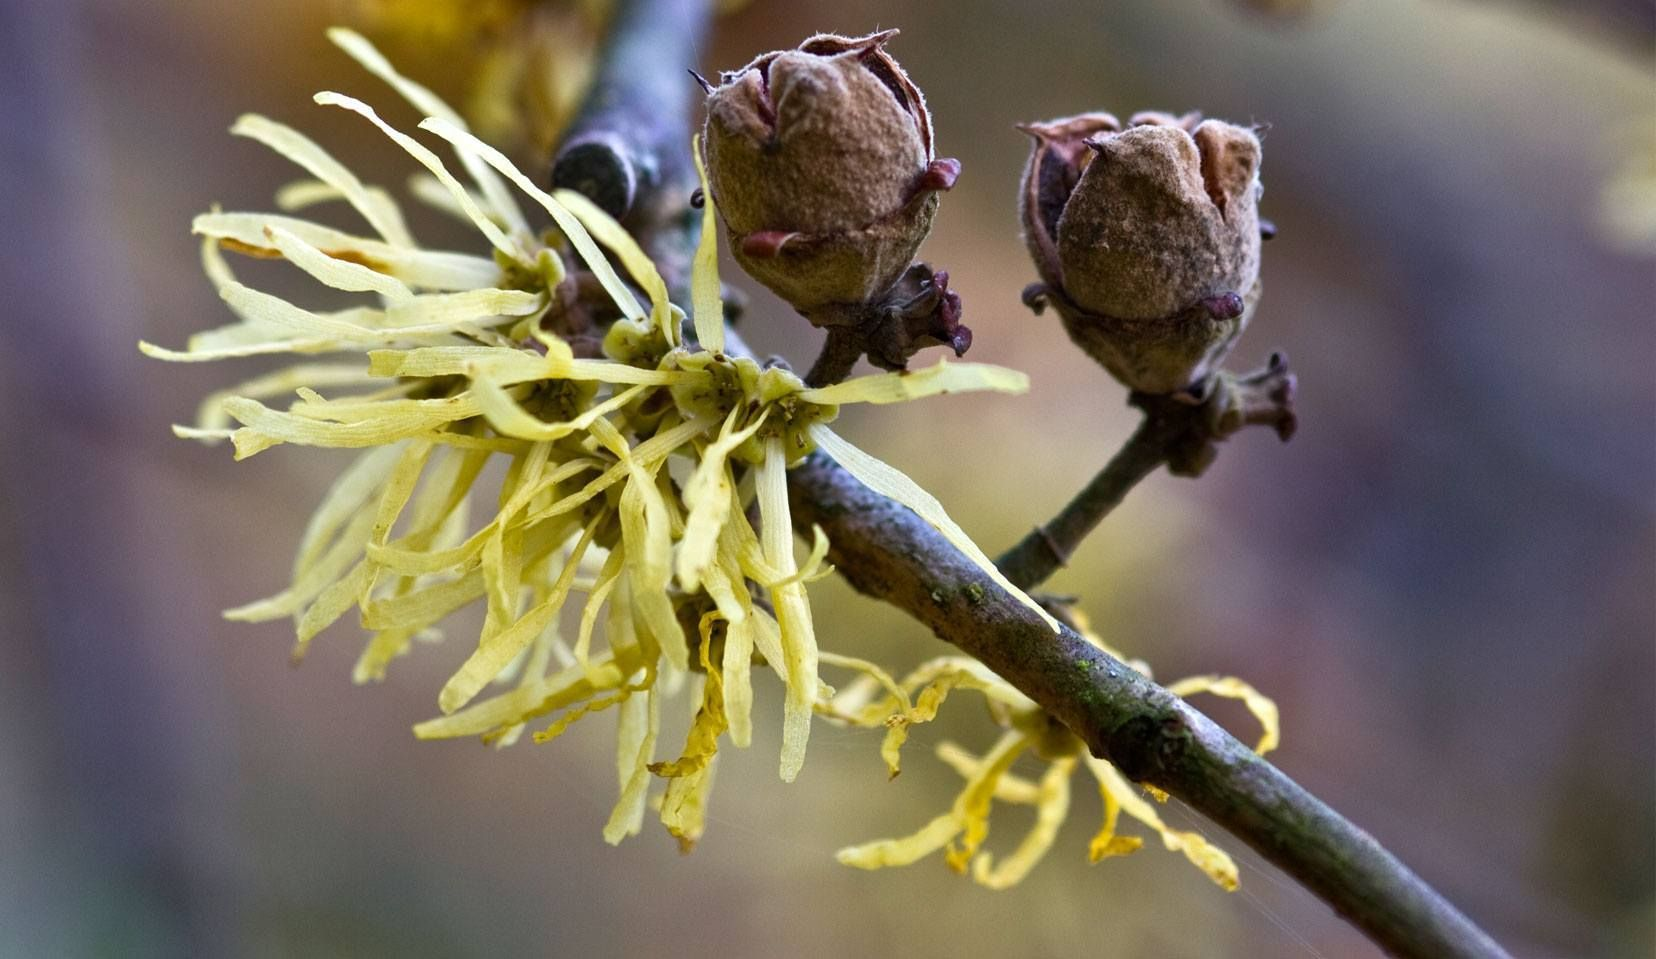 Witch Hazel Is One Of The Key Plants In Dr Hauschka Skin Care Dr